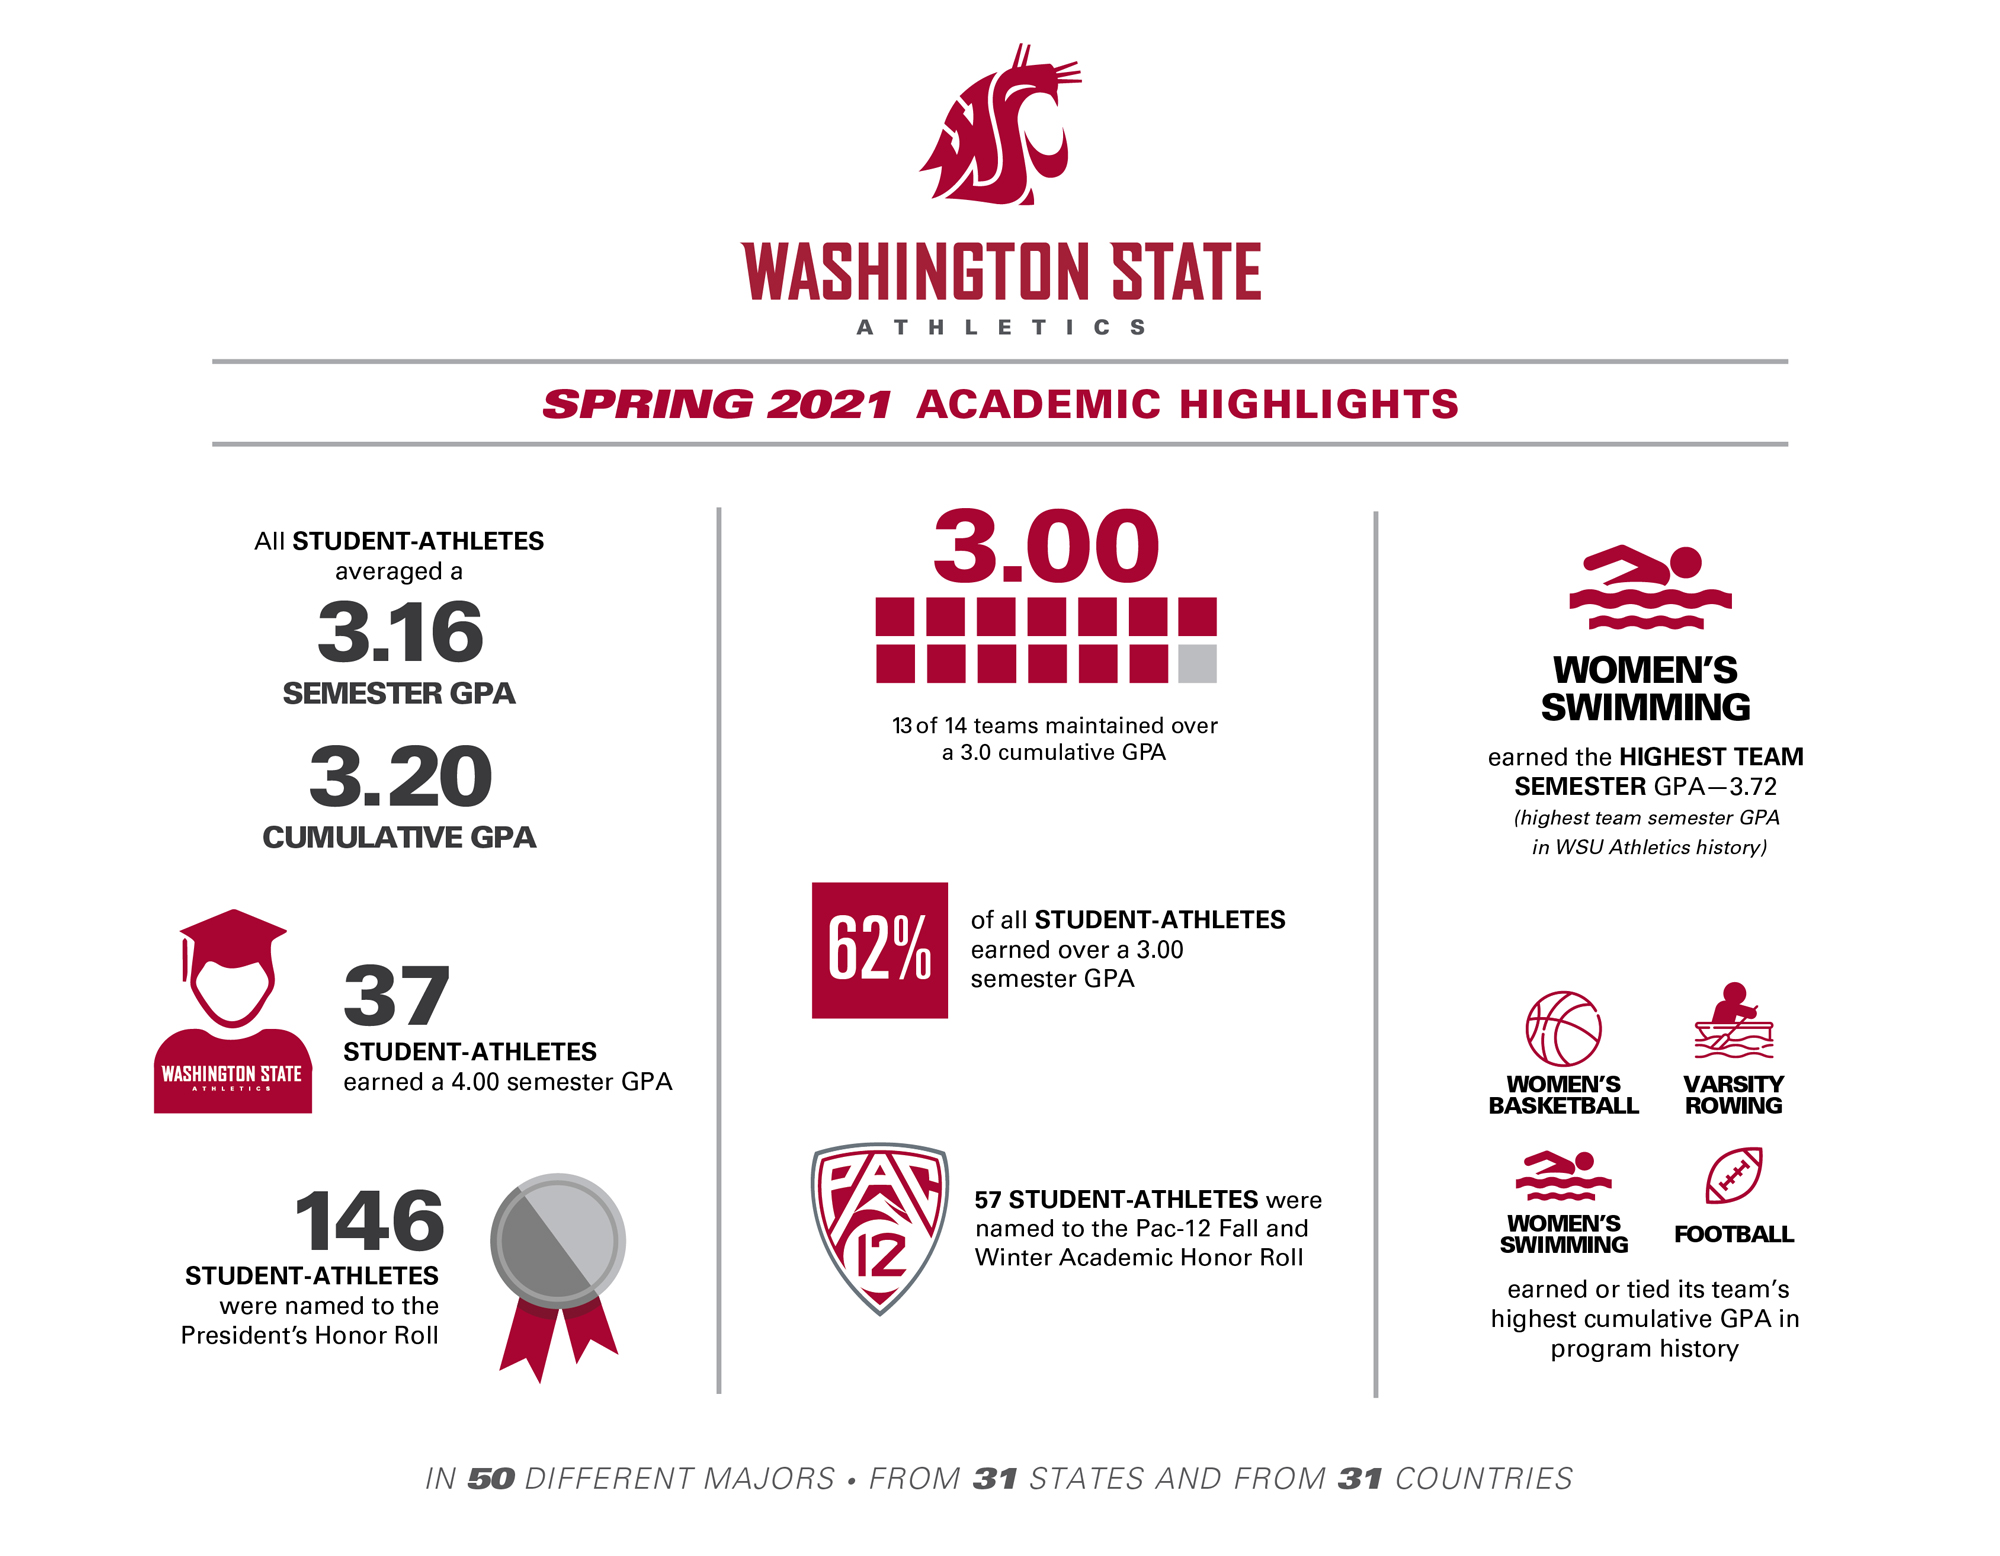 Infographic featuring WSU Athletics Spring 2021 academic highlights.